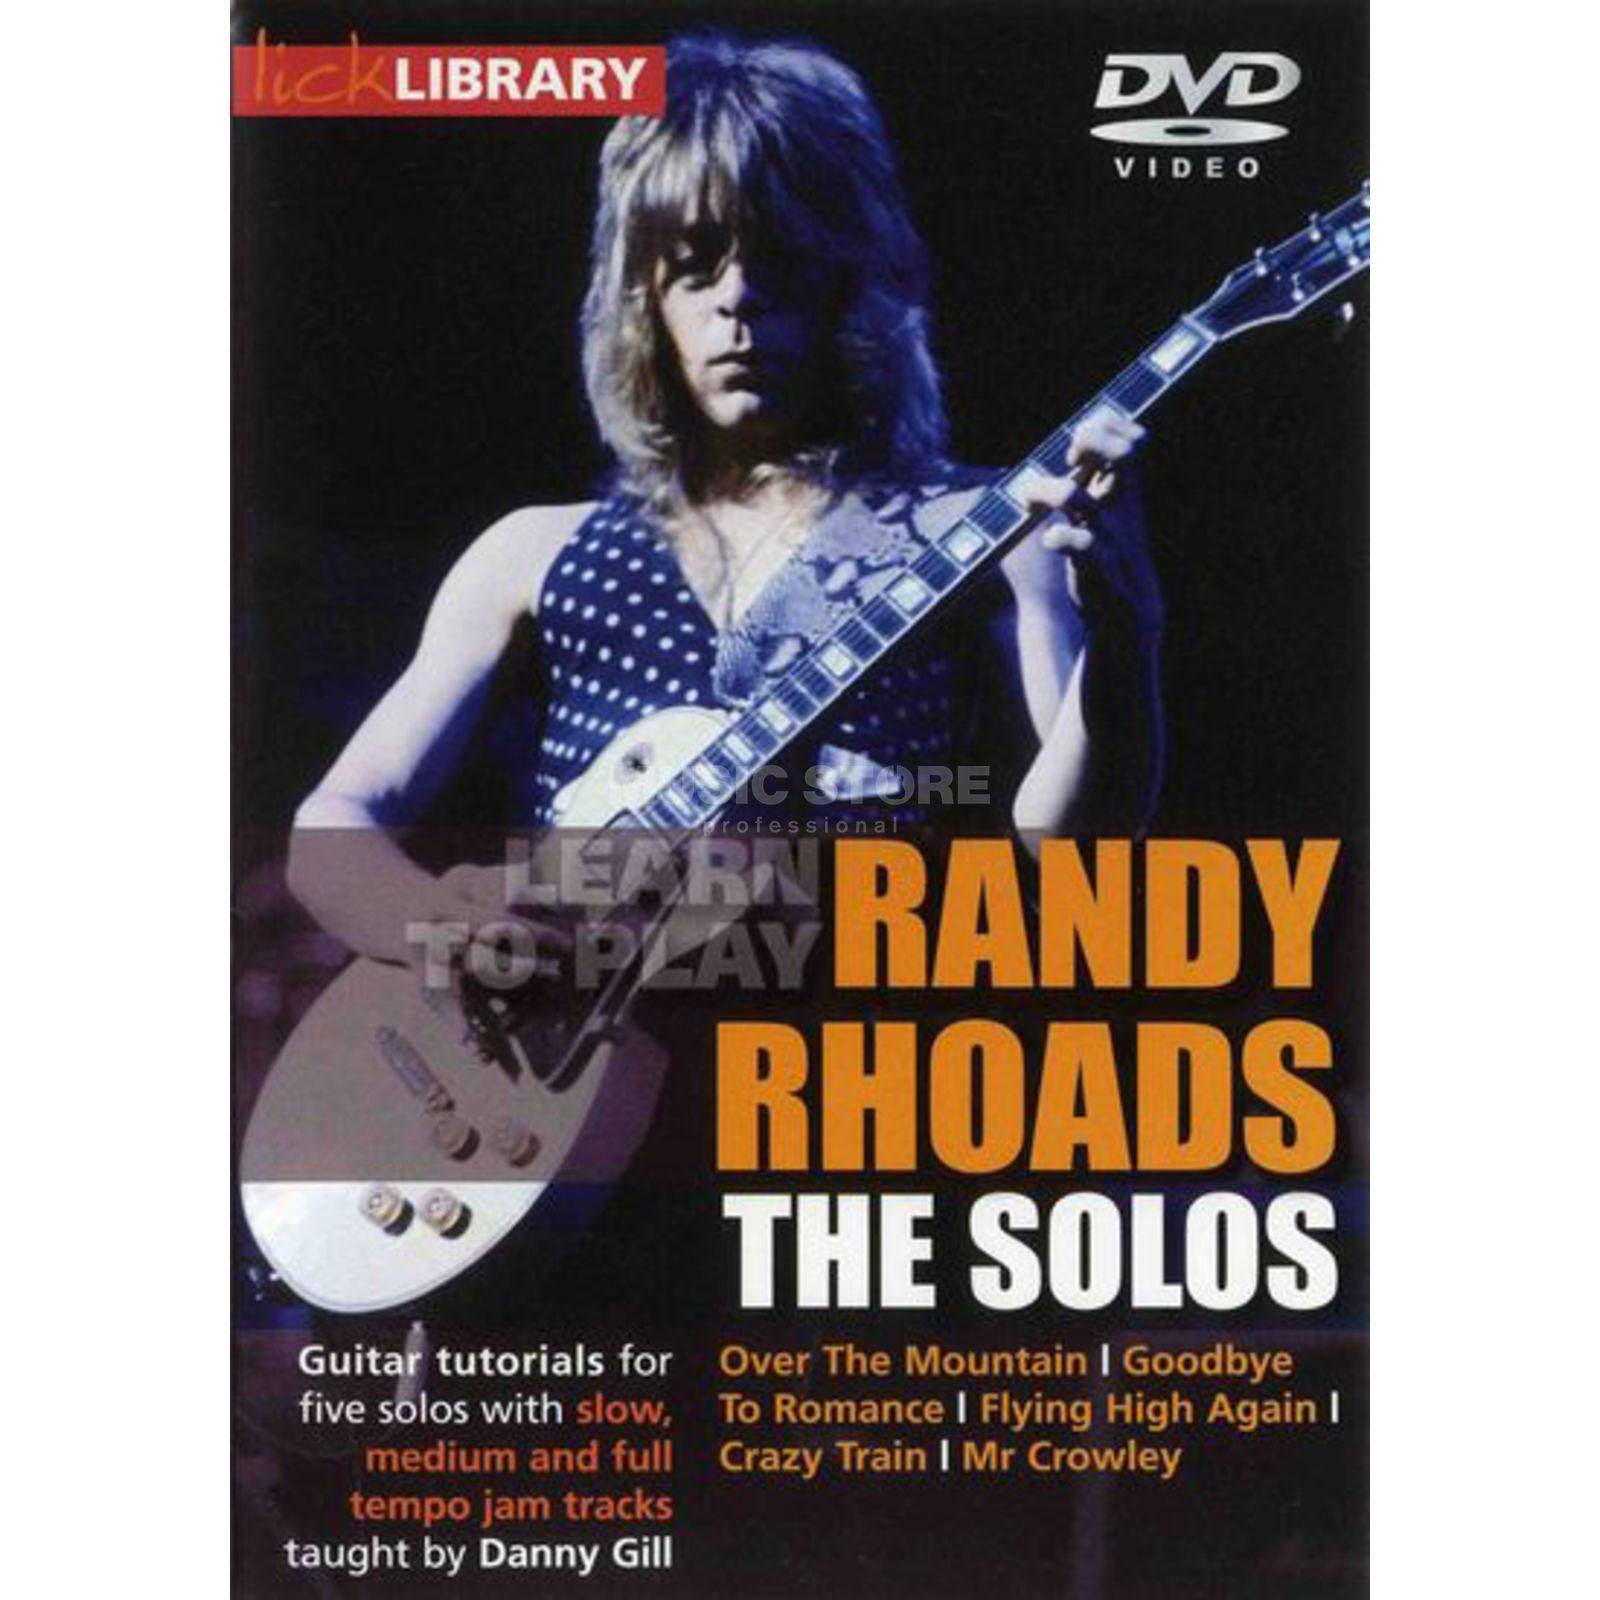 Roadrock International Lick Library: Learn To Play Randy Rhoads - The Solos DVD Produktbild